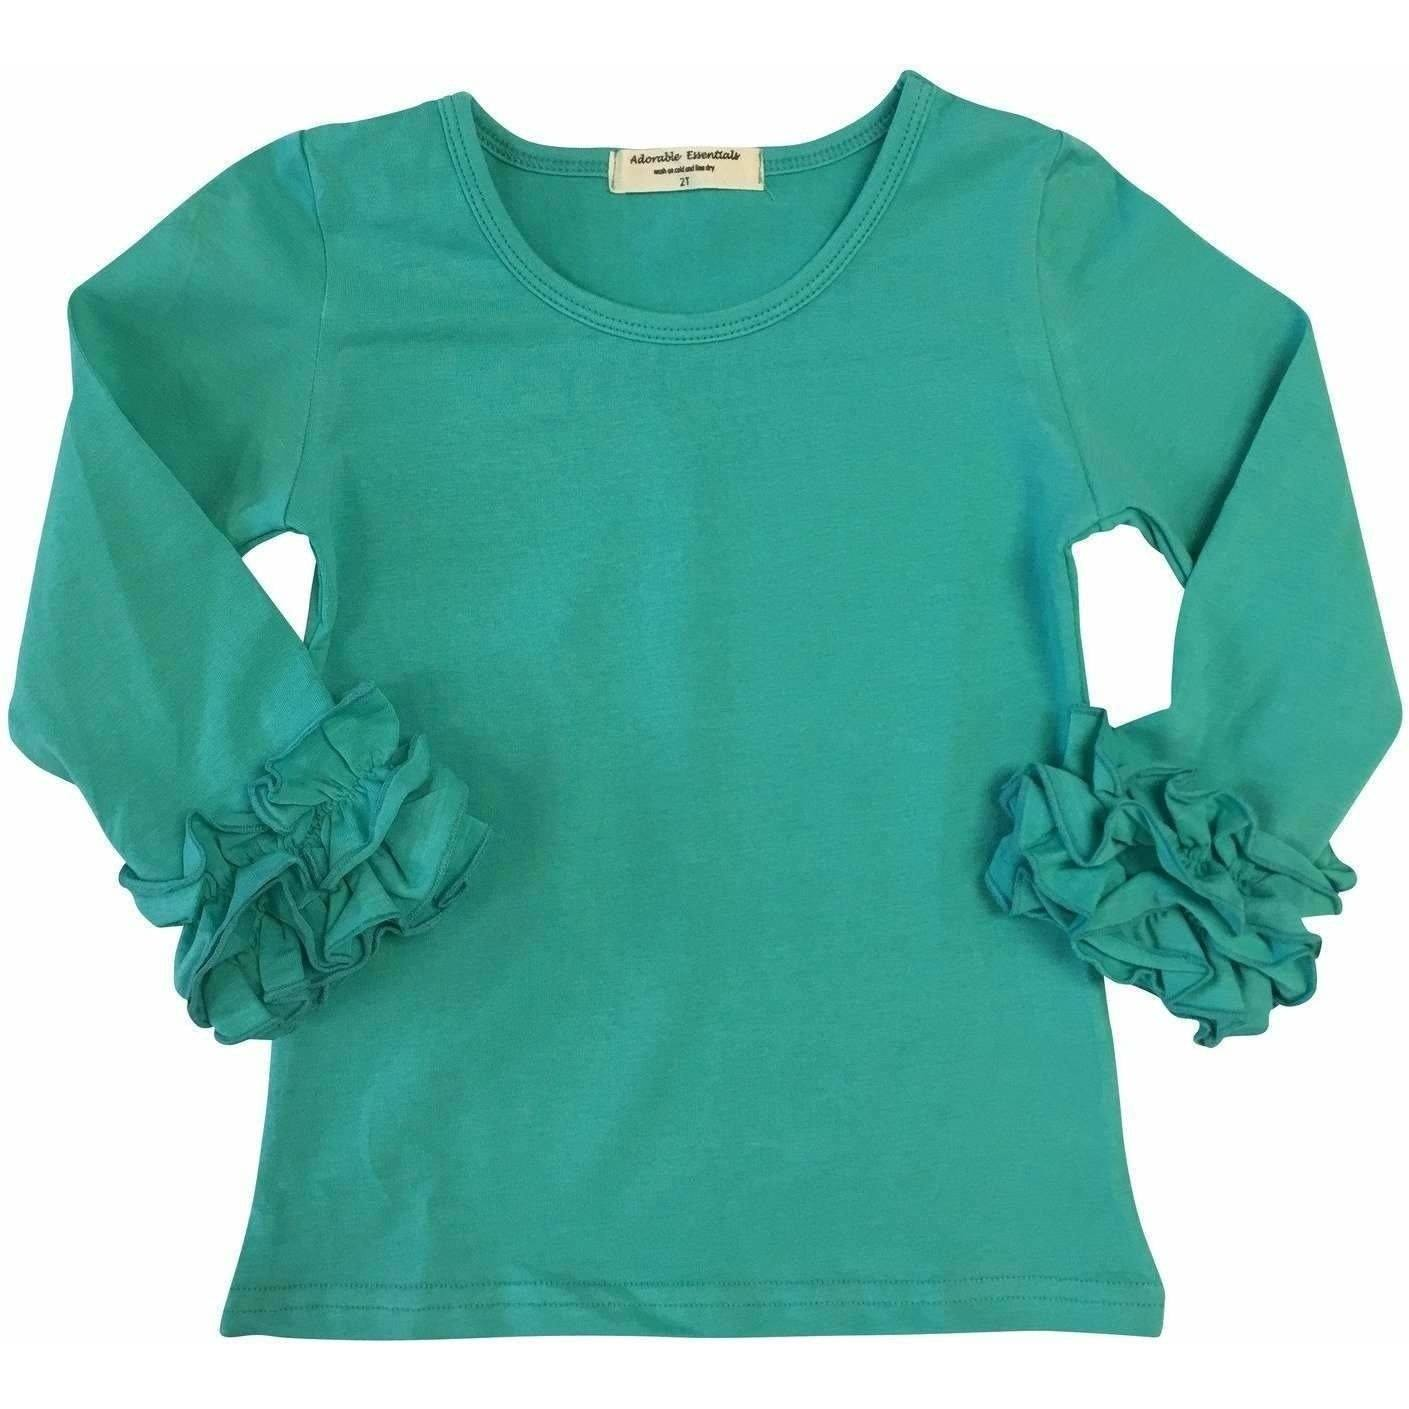 Icing Ruffle Cuff Shirts - In stock! - Adorable Essentials